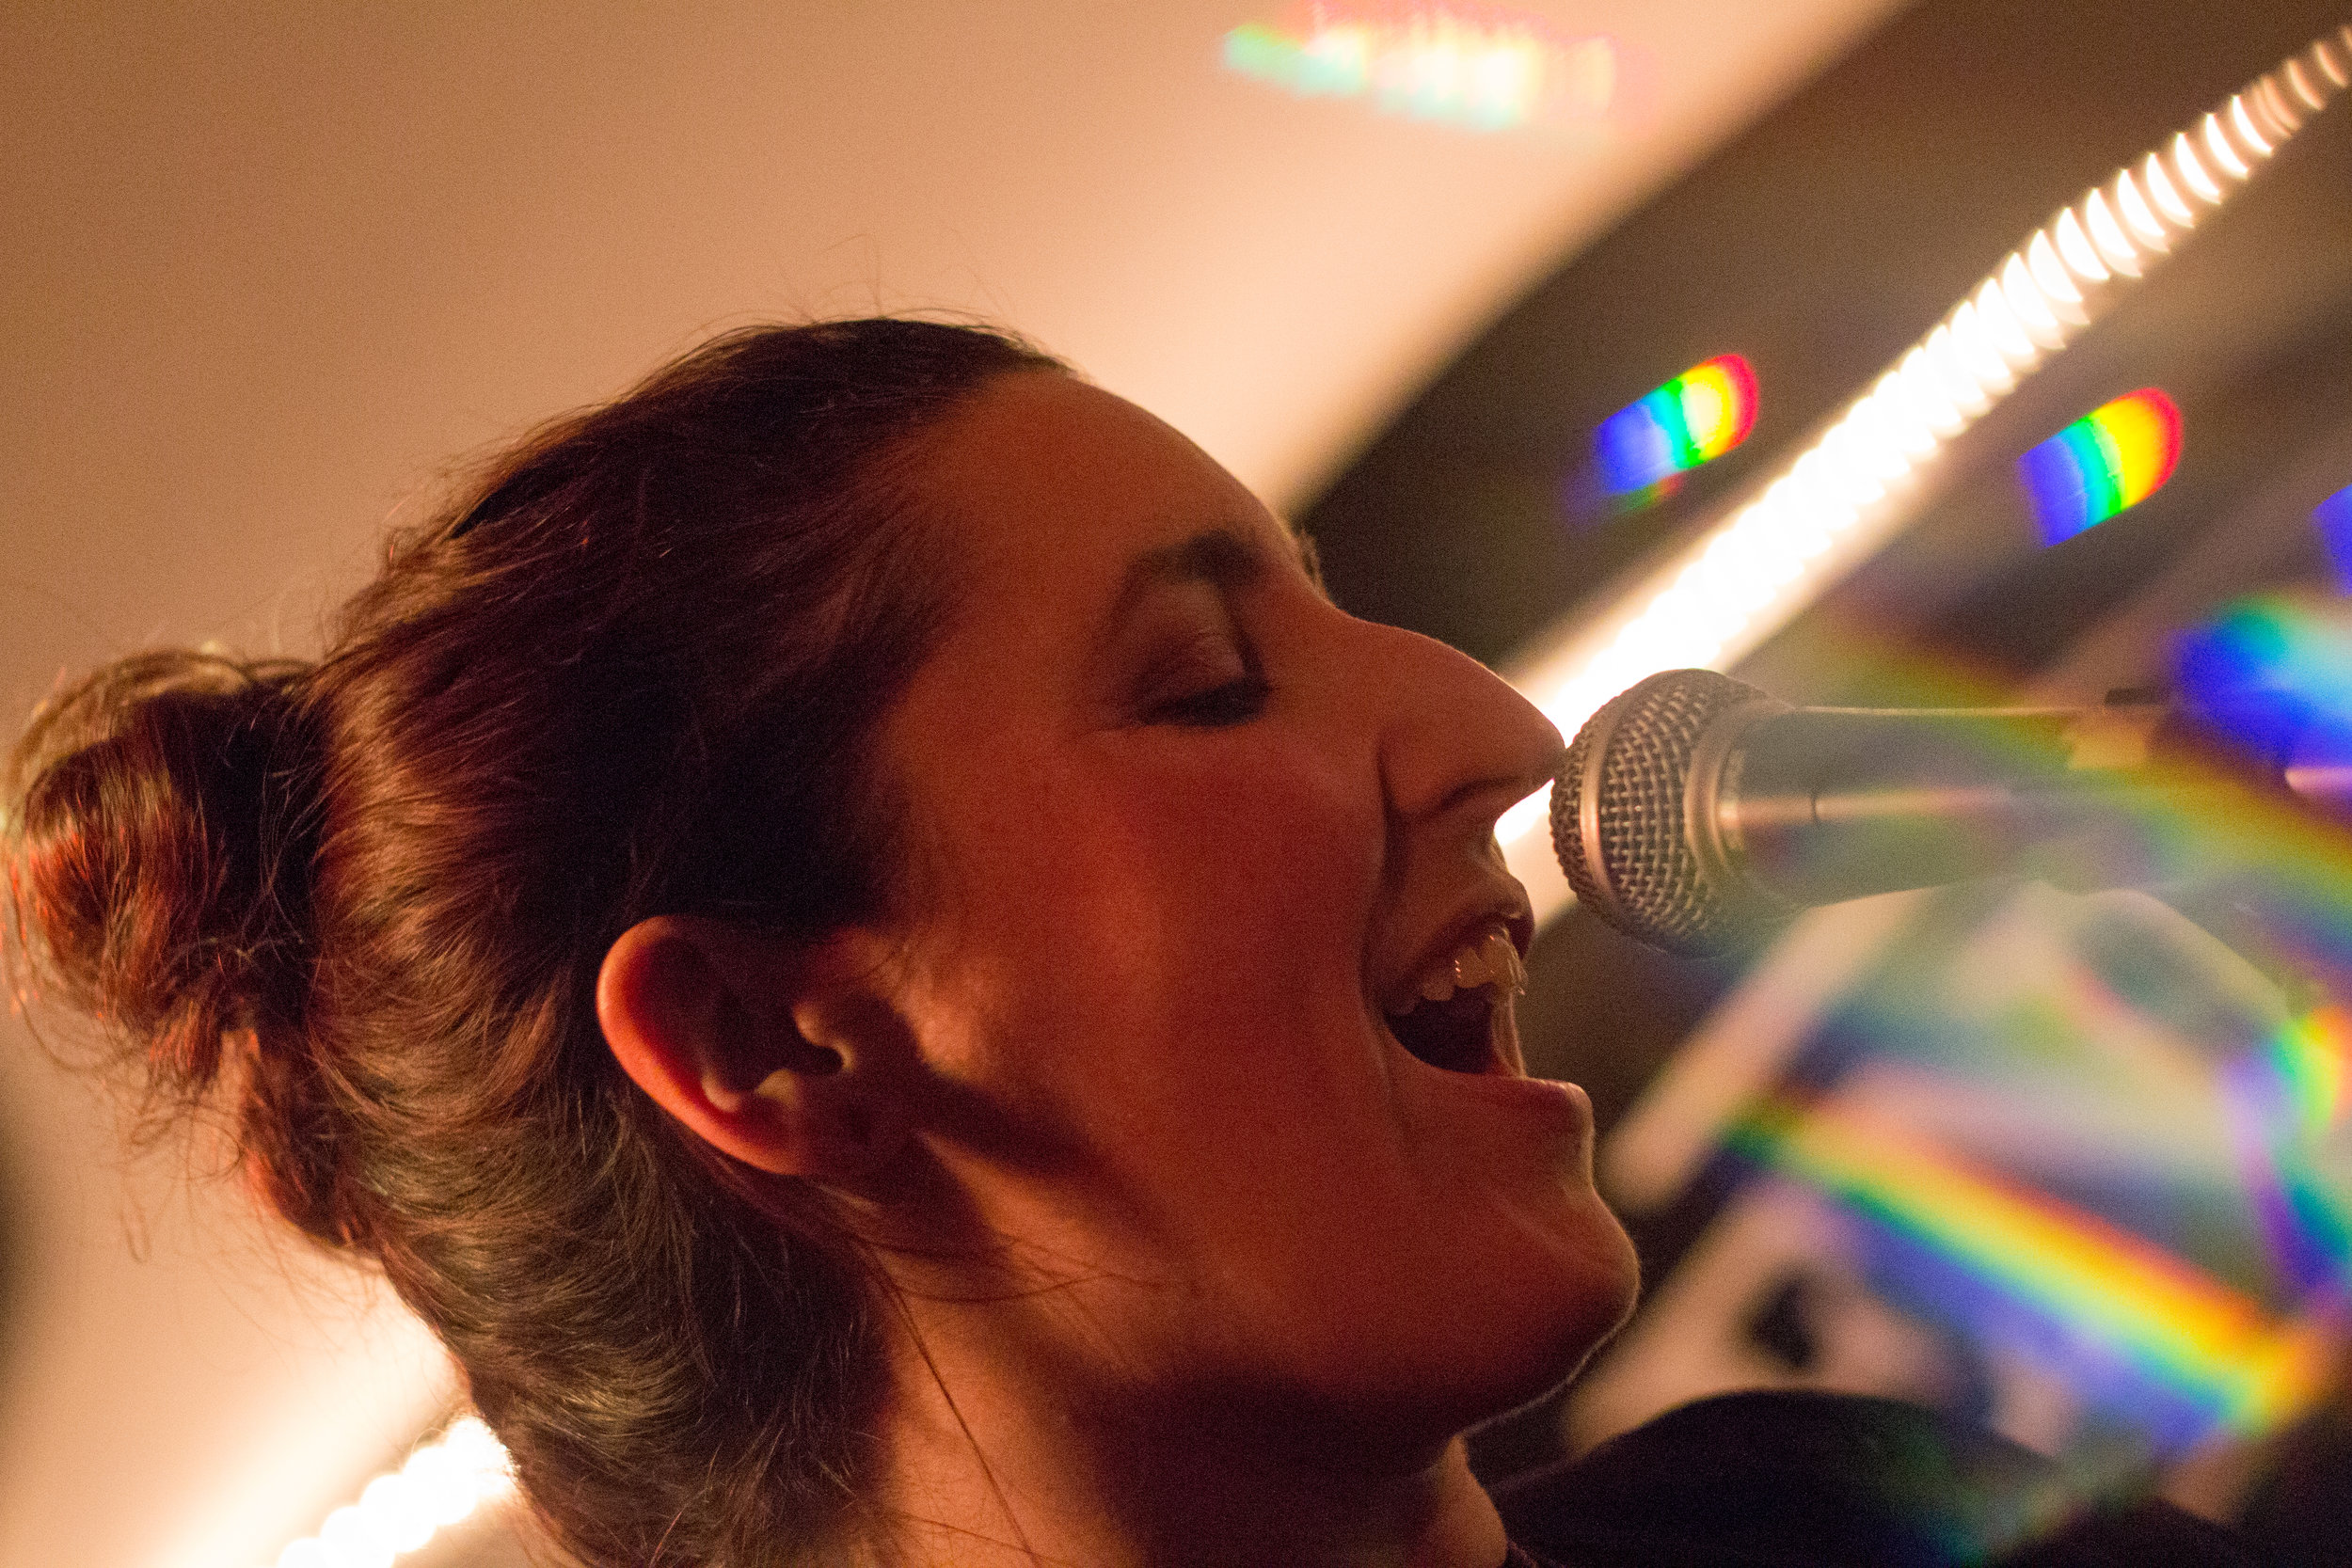 ruth singing rainbows.jpg